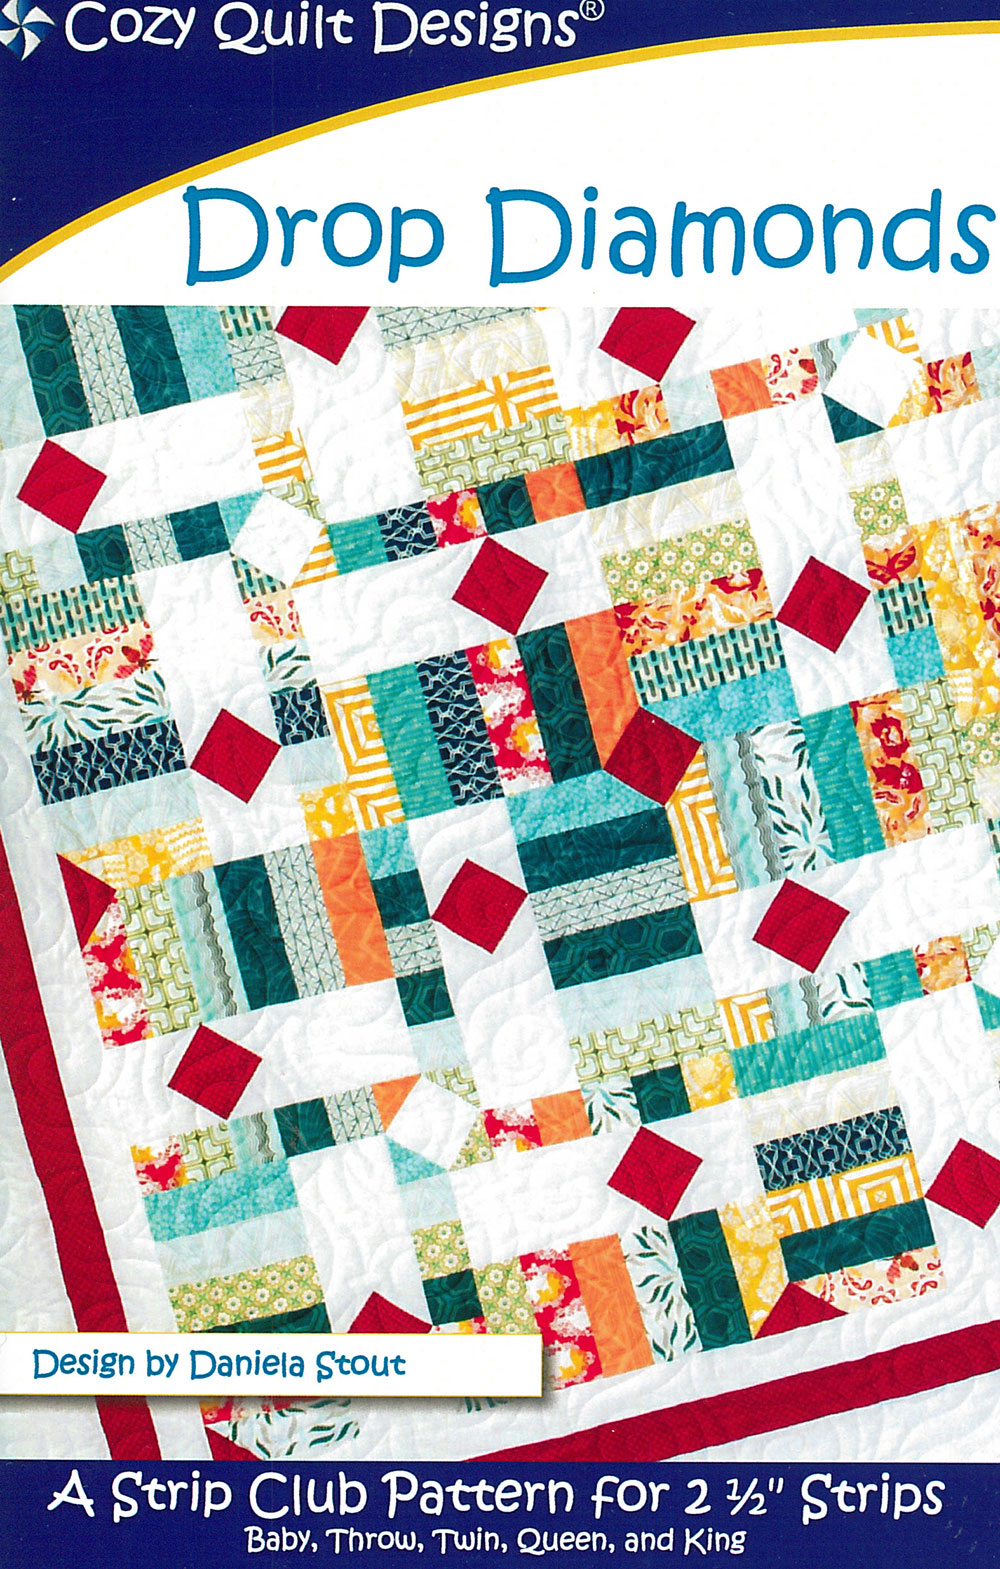 Drop Diamonds by Cozy Quilt Designs